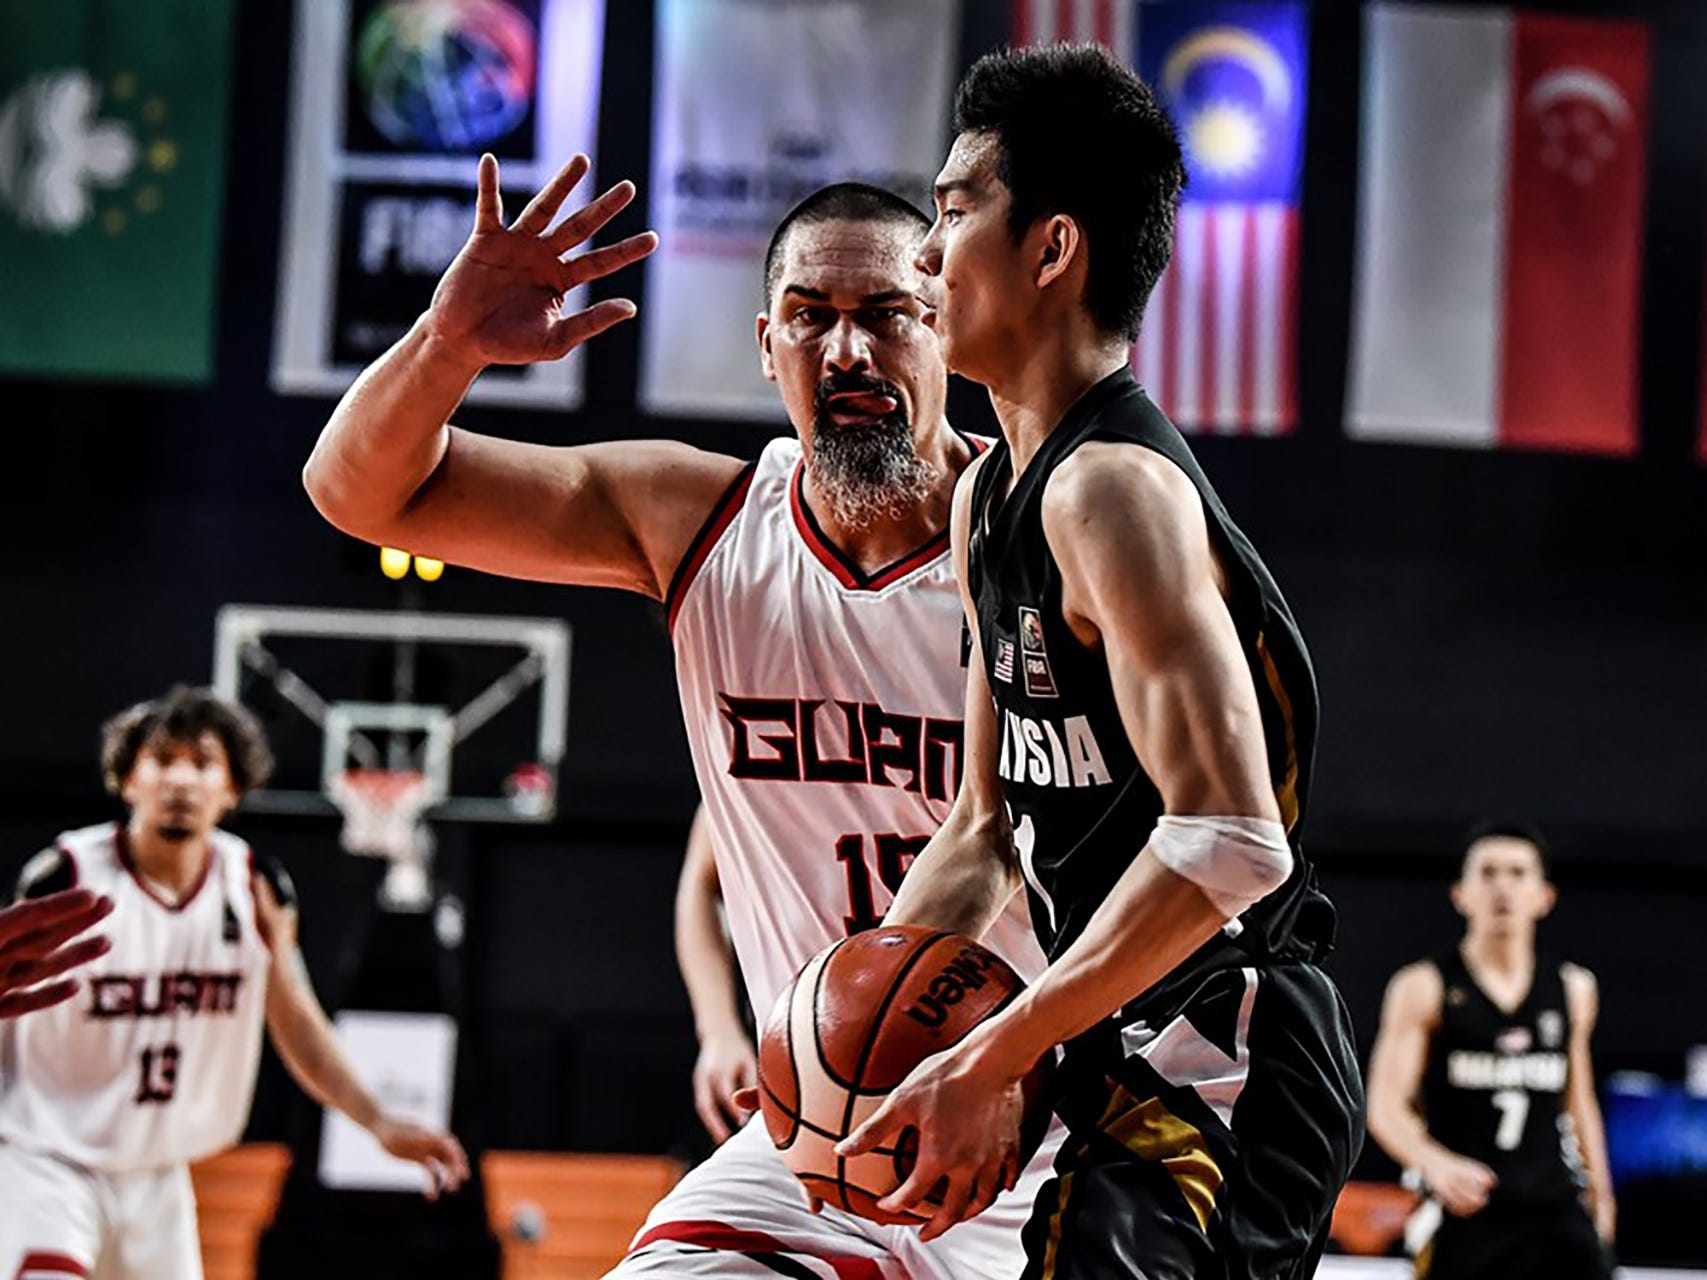 Team Guam big man Mekeli Wesley dwarfs Malaysia's Yi Hoiu Wong during Guam's final game against Malaysia. Guam won 101-78 to complete a 6-0 sweep of all teams in  Asia's Eastern Division and move on to the qualifier round of the FIBA Asia Cup 2021.